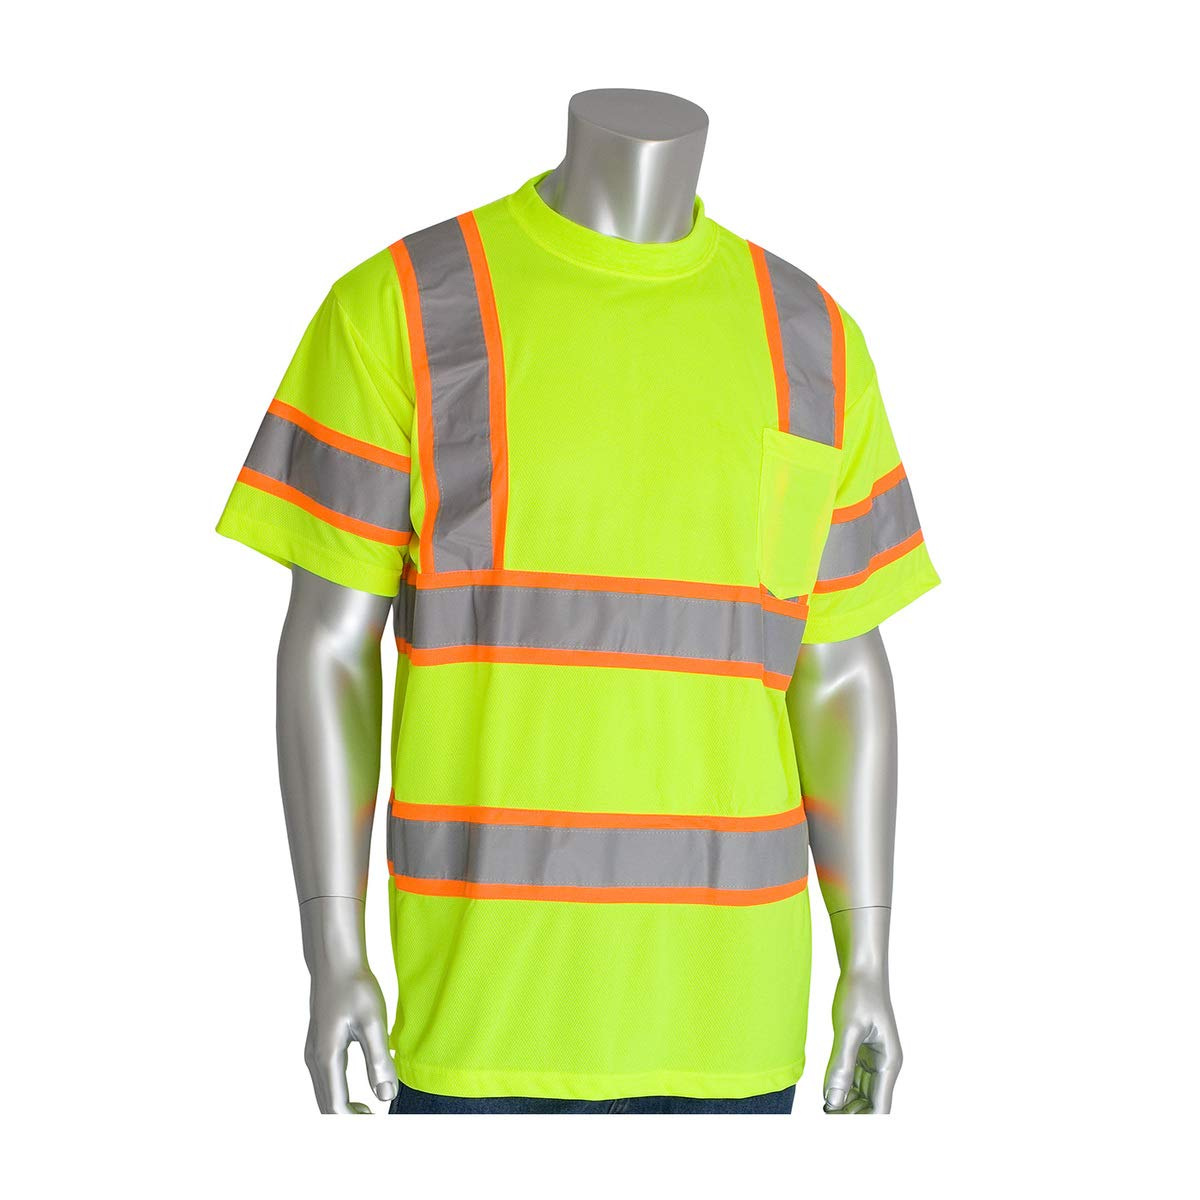 Protective Industrial Products 3X Hi-Viz Yellow/Hi-Viz Orange 1 Polyester/Birdseye Mesh Two-Tone Shirt - Pack of 25 by PROTECTIVE INDUSTRIAL PRODUCTS (Image #1)